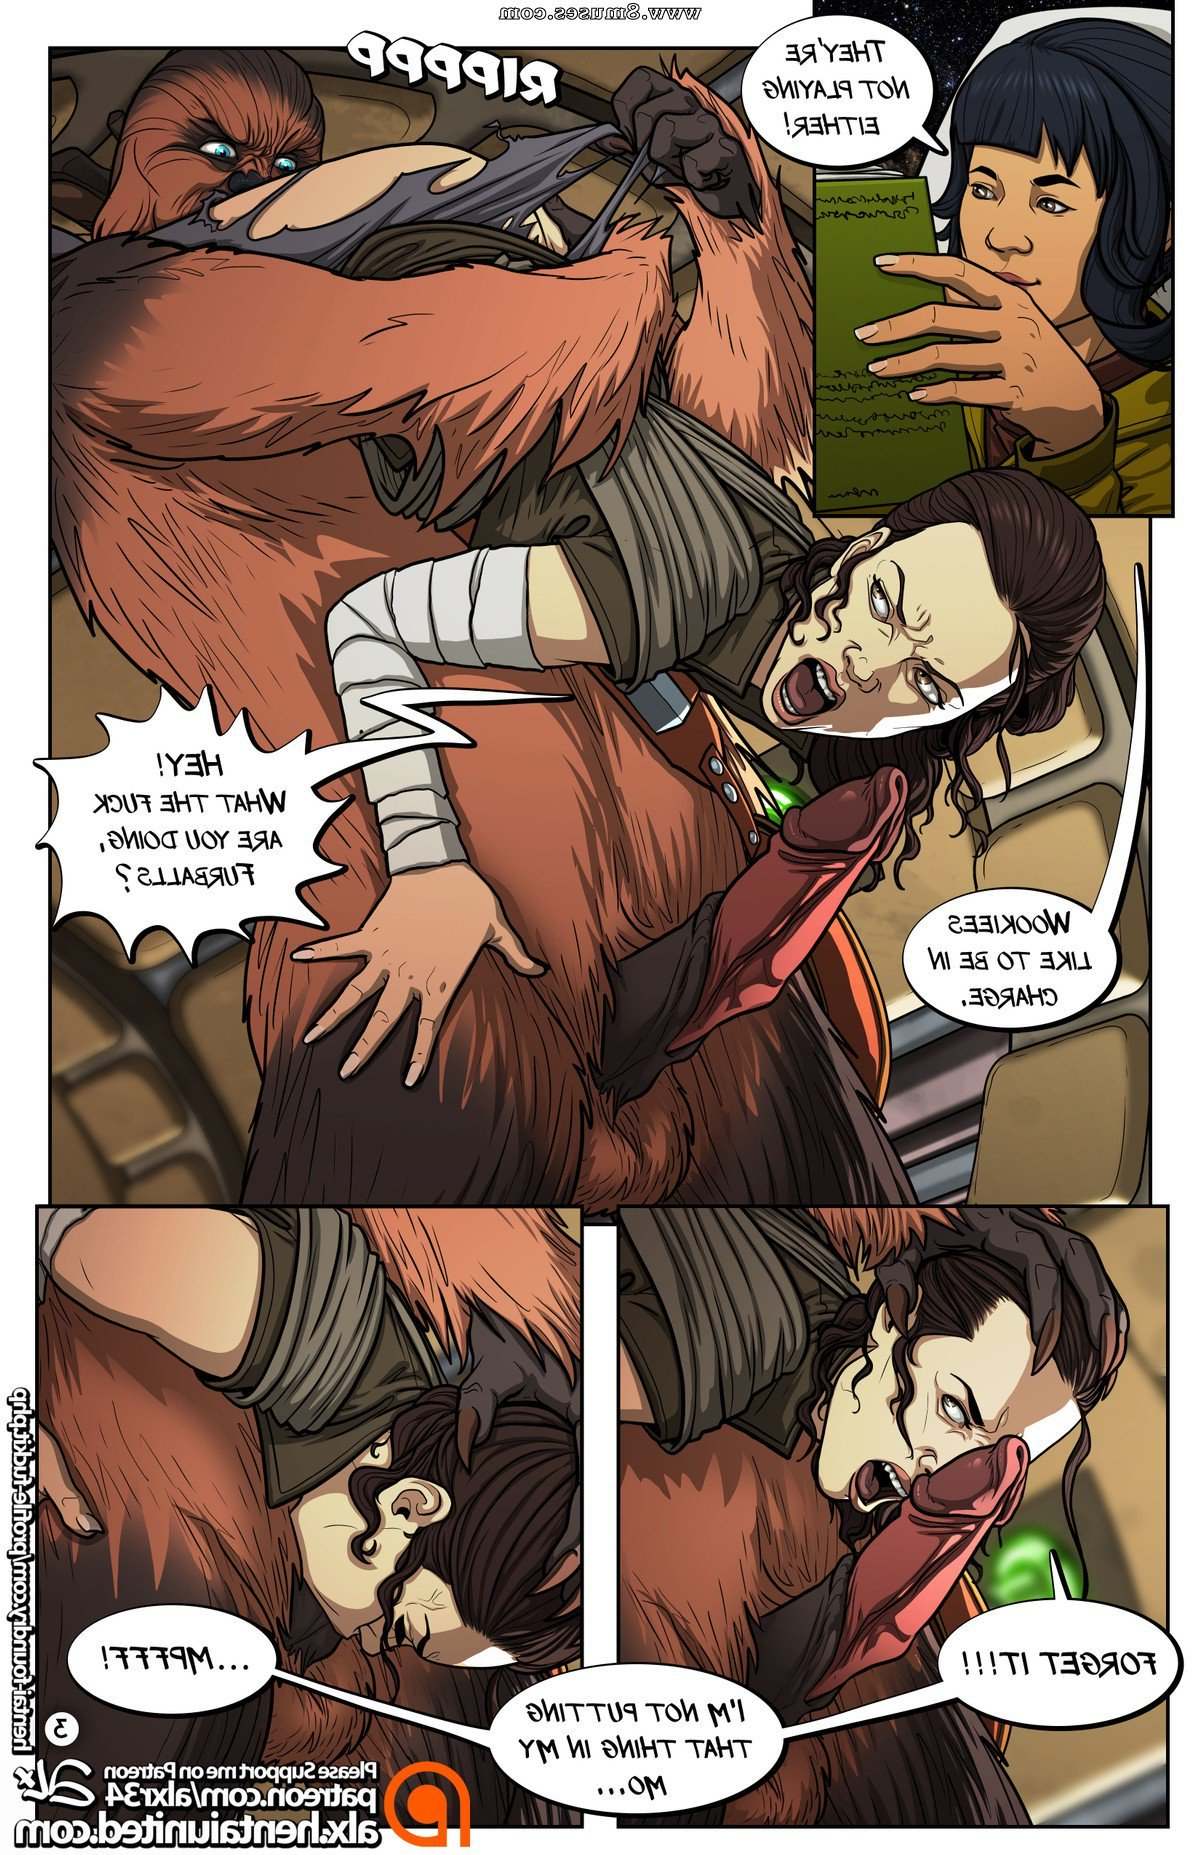 Fuckit-Alx-Comics/A-Complete-Guide-to-Wookie-Sex/Issue-1 A_Complete_Guide_to_Wookie_Sex_-_Issue_1_4.jpg